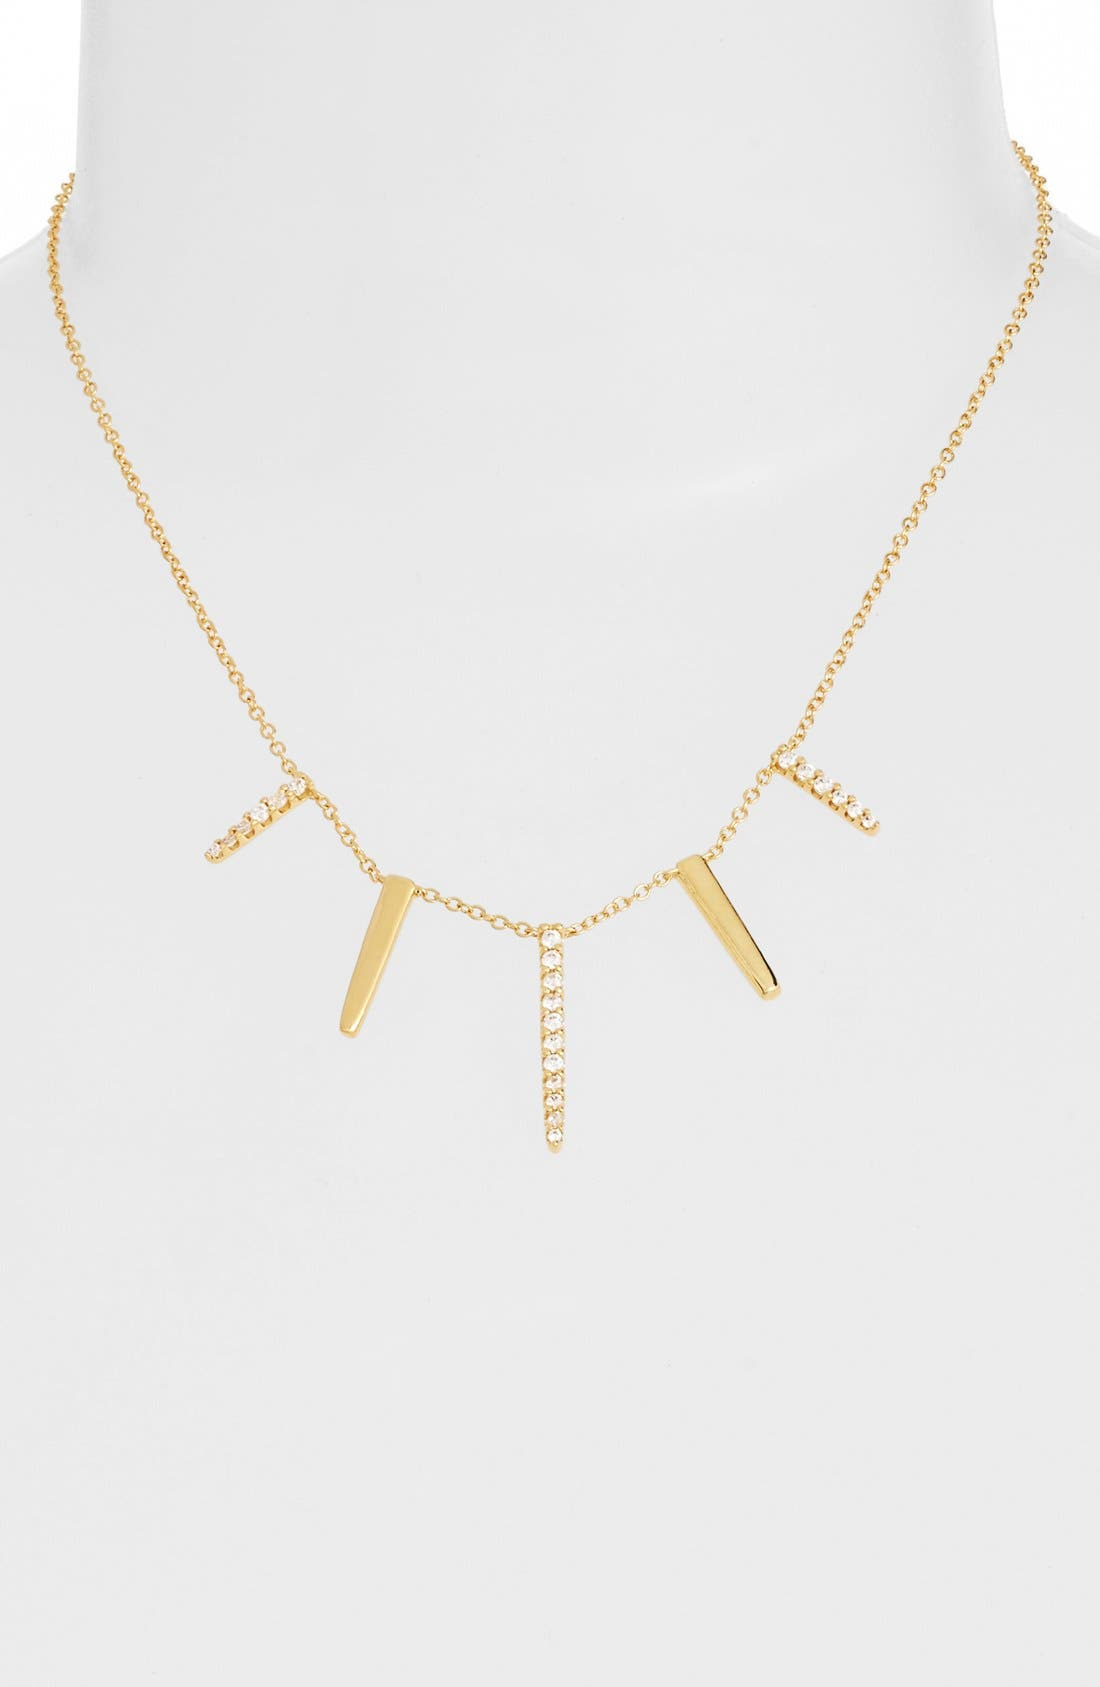 CZ BY KENNETH JAY LANE Pavé Spike Cubic Zirconia Frontal Necklace